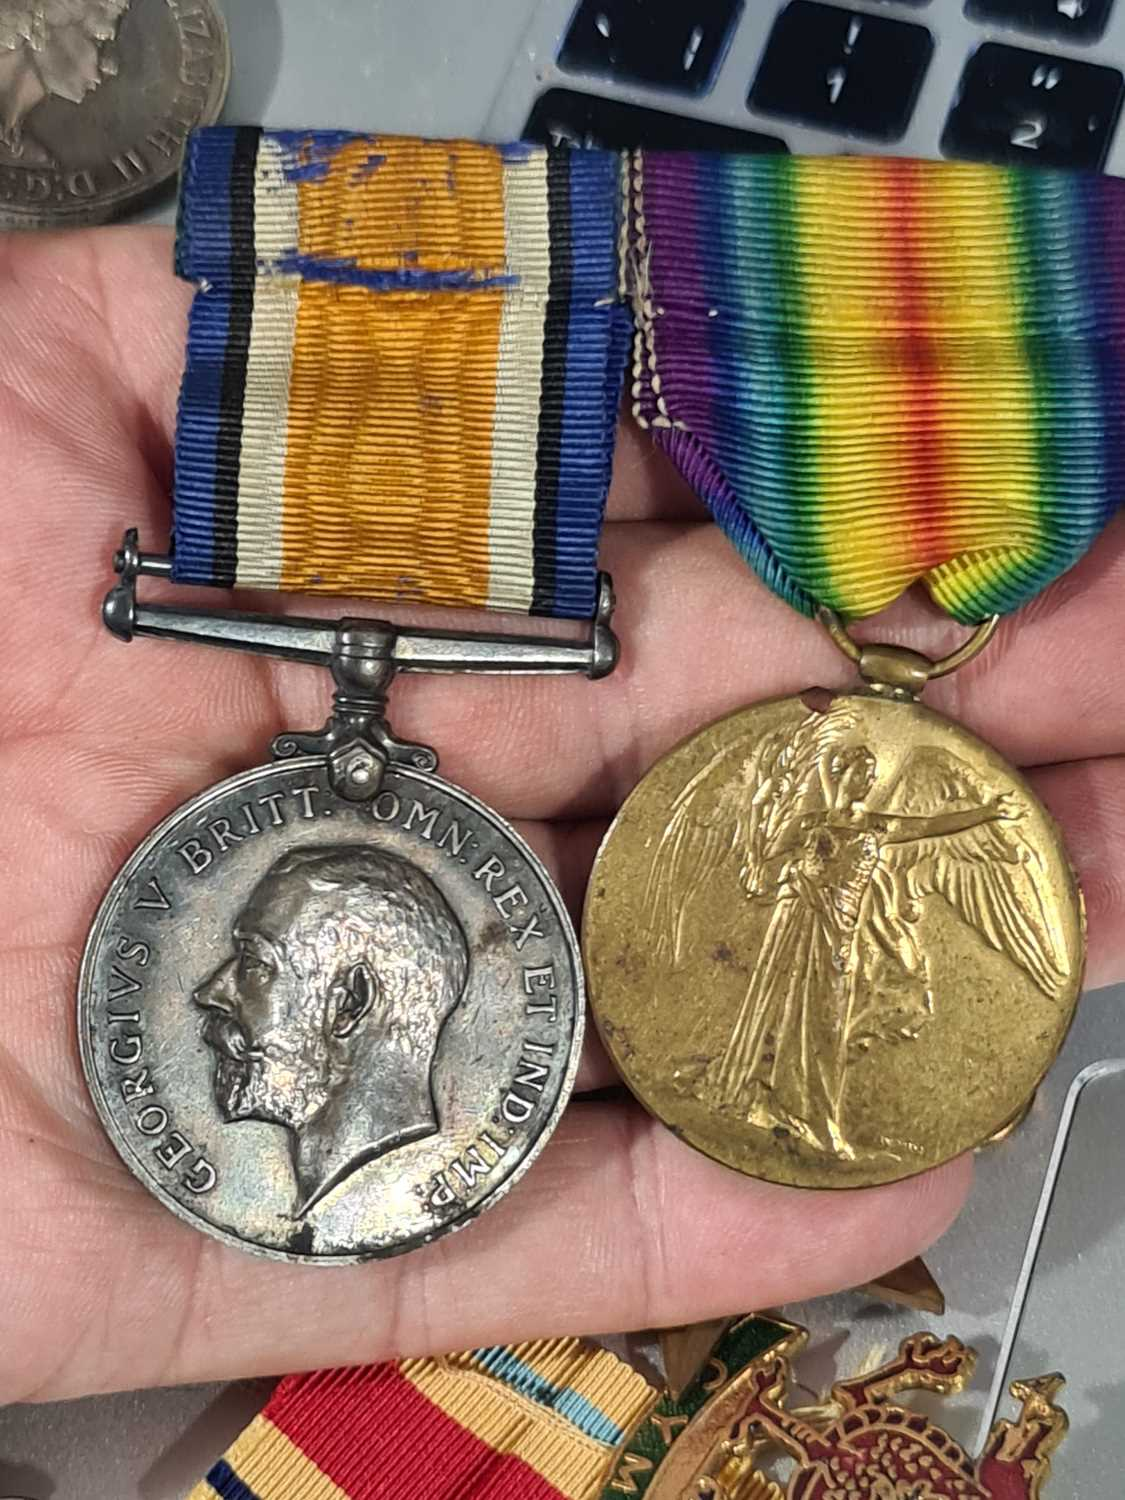 A mixed group of WWI and WWII medals, some grouped, to include a WWI Campaign and Victory medal to - Image 43 of 80